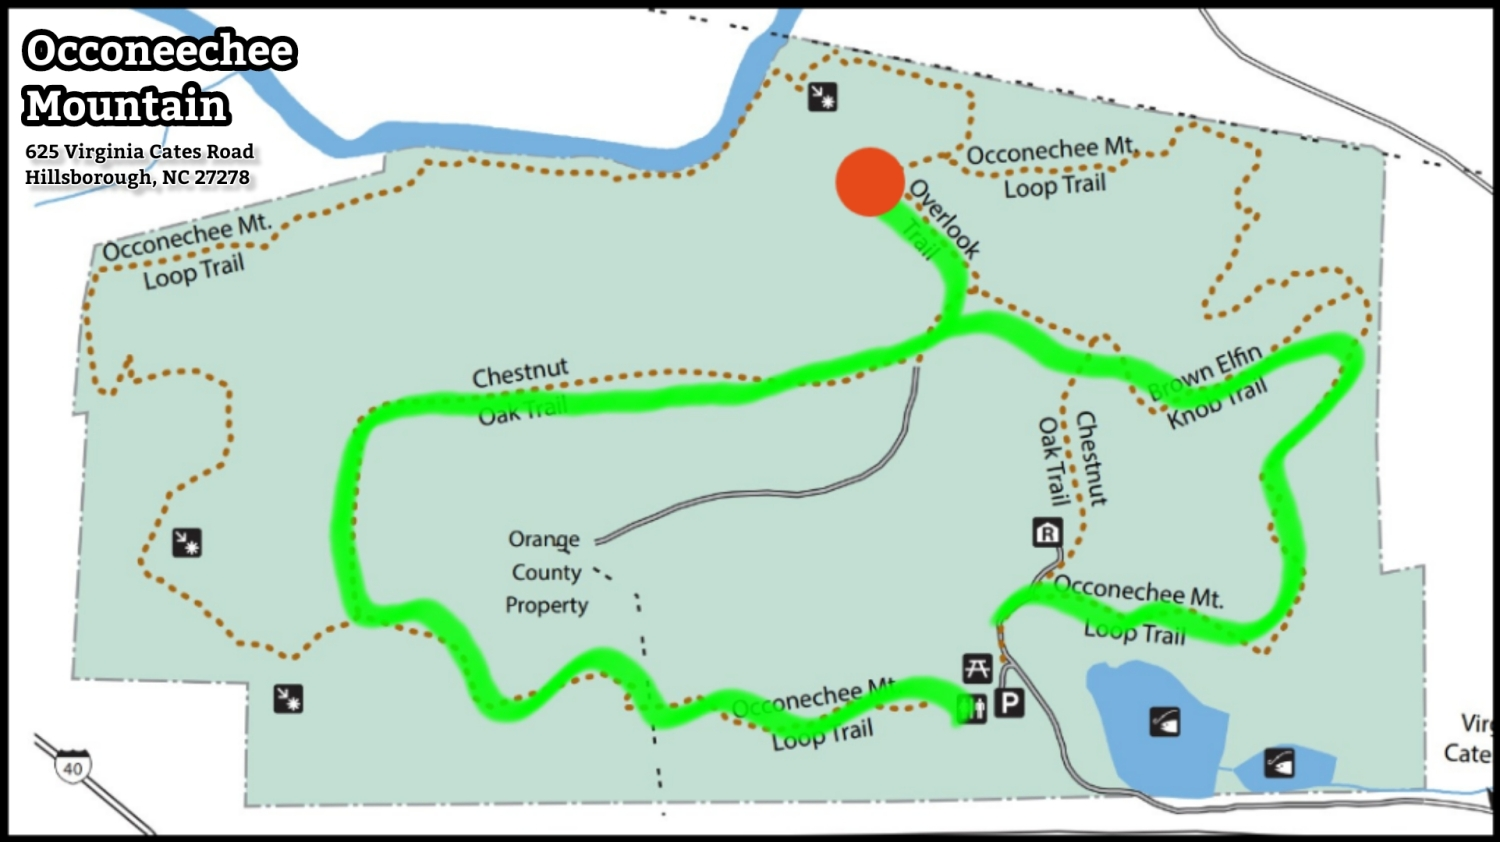 Map of Chestnut Oak Trail at Occoneechee Mountain